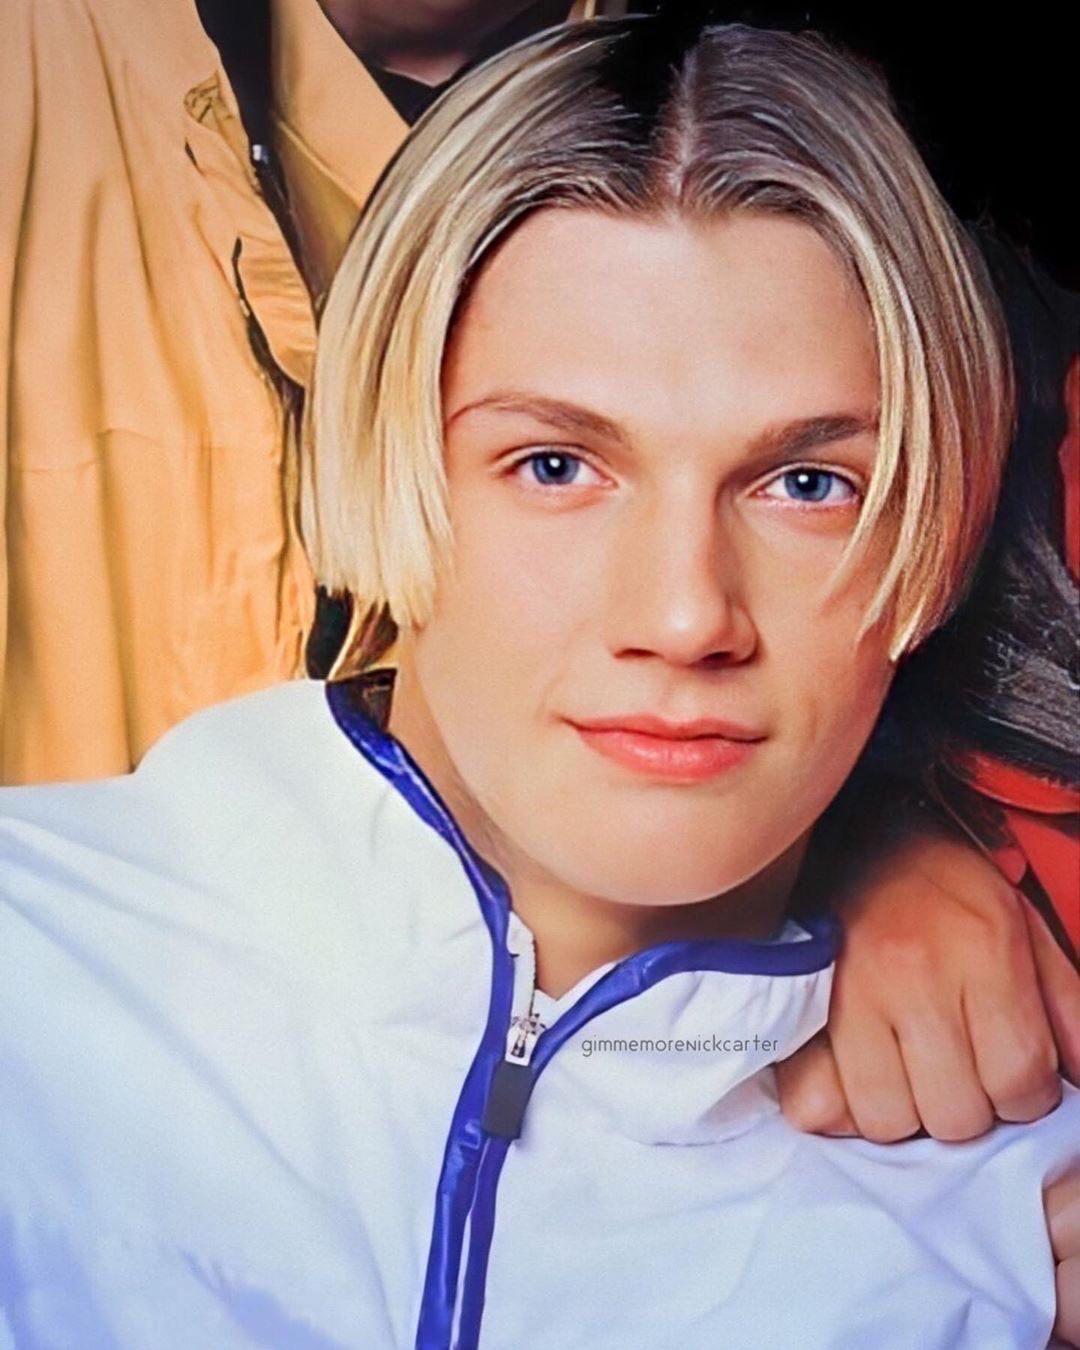 Pin By Kgrande On Nick Carter 90s 3 3 In 2020 Fade Haircut Mens Hair Trends Nick Carter